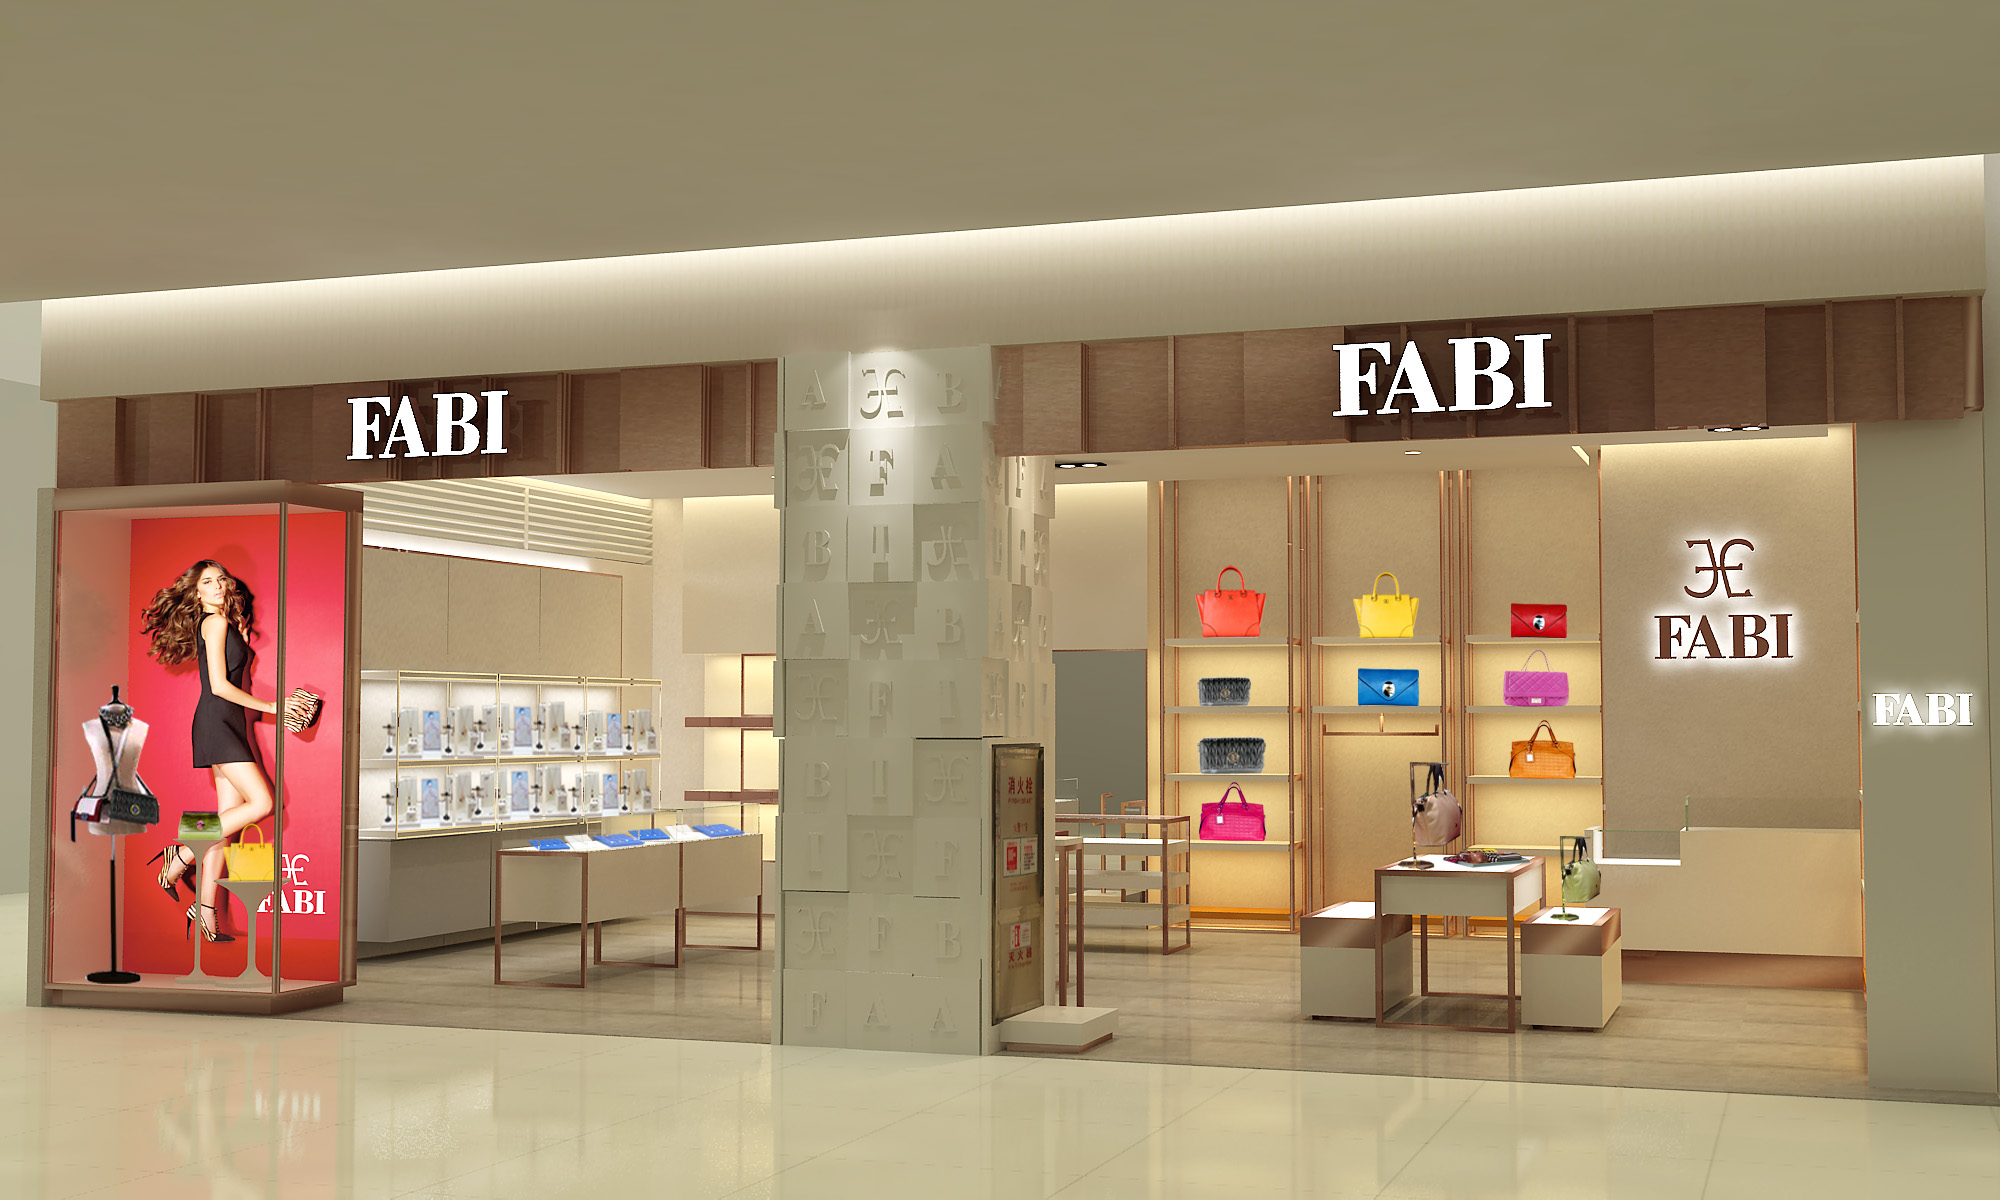 WOODEN-METAL-FABI-JEWELRY-MALL-KIOSK